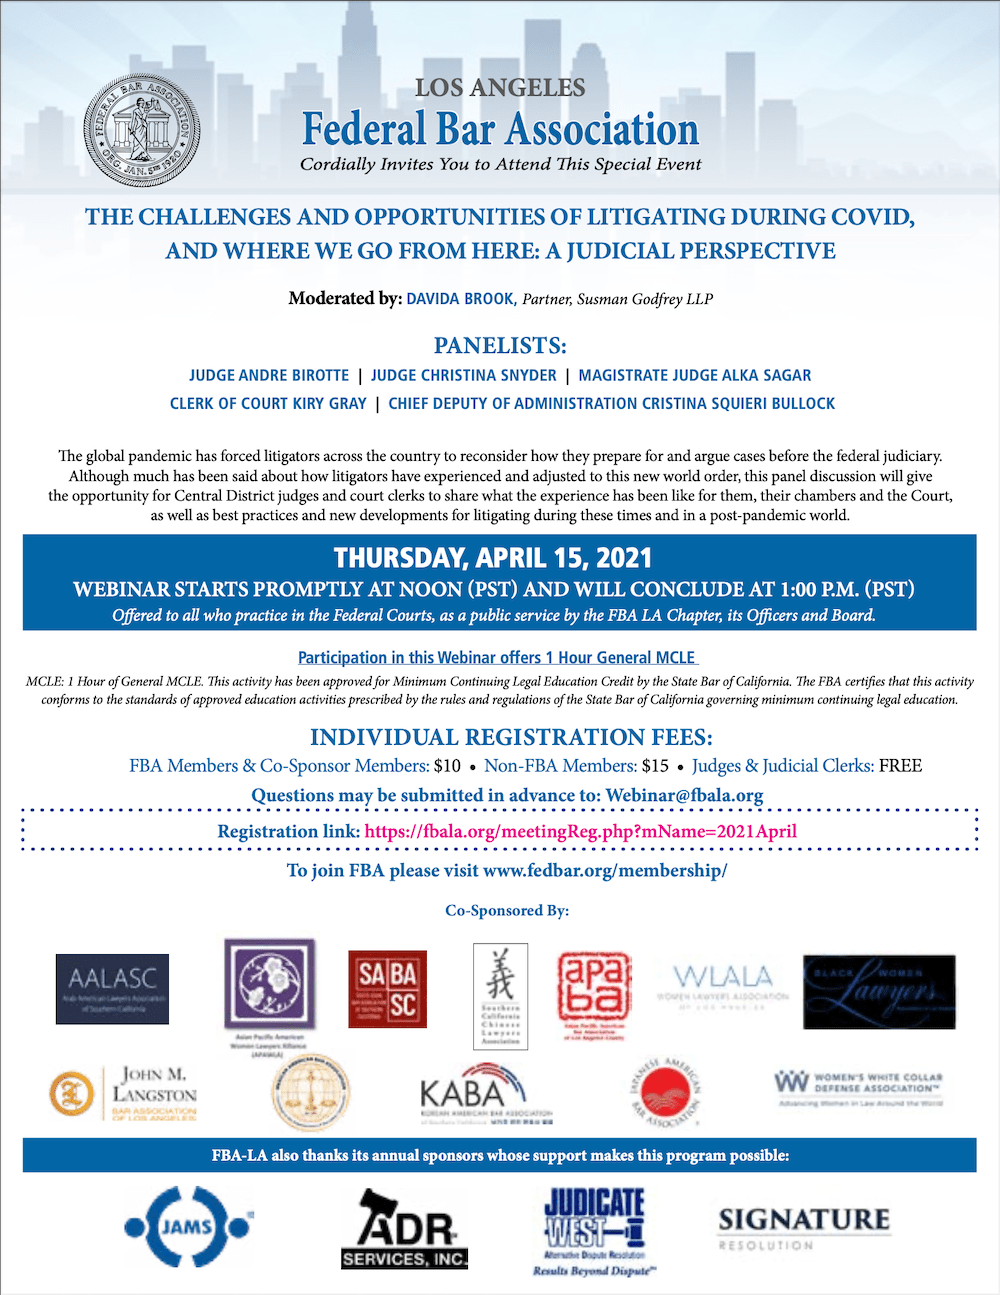 Litigating During Covid - Thursday, April 15, 2021